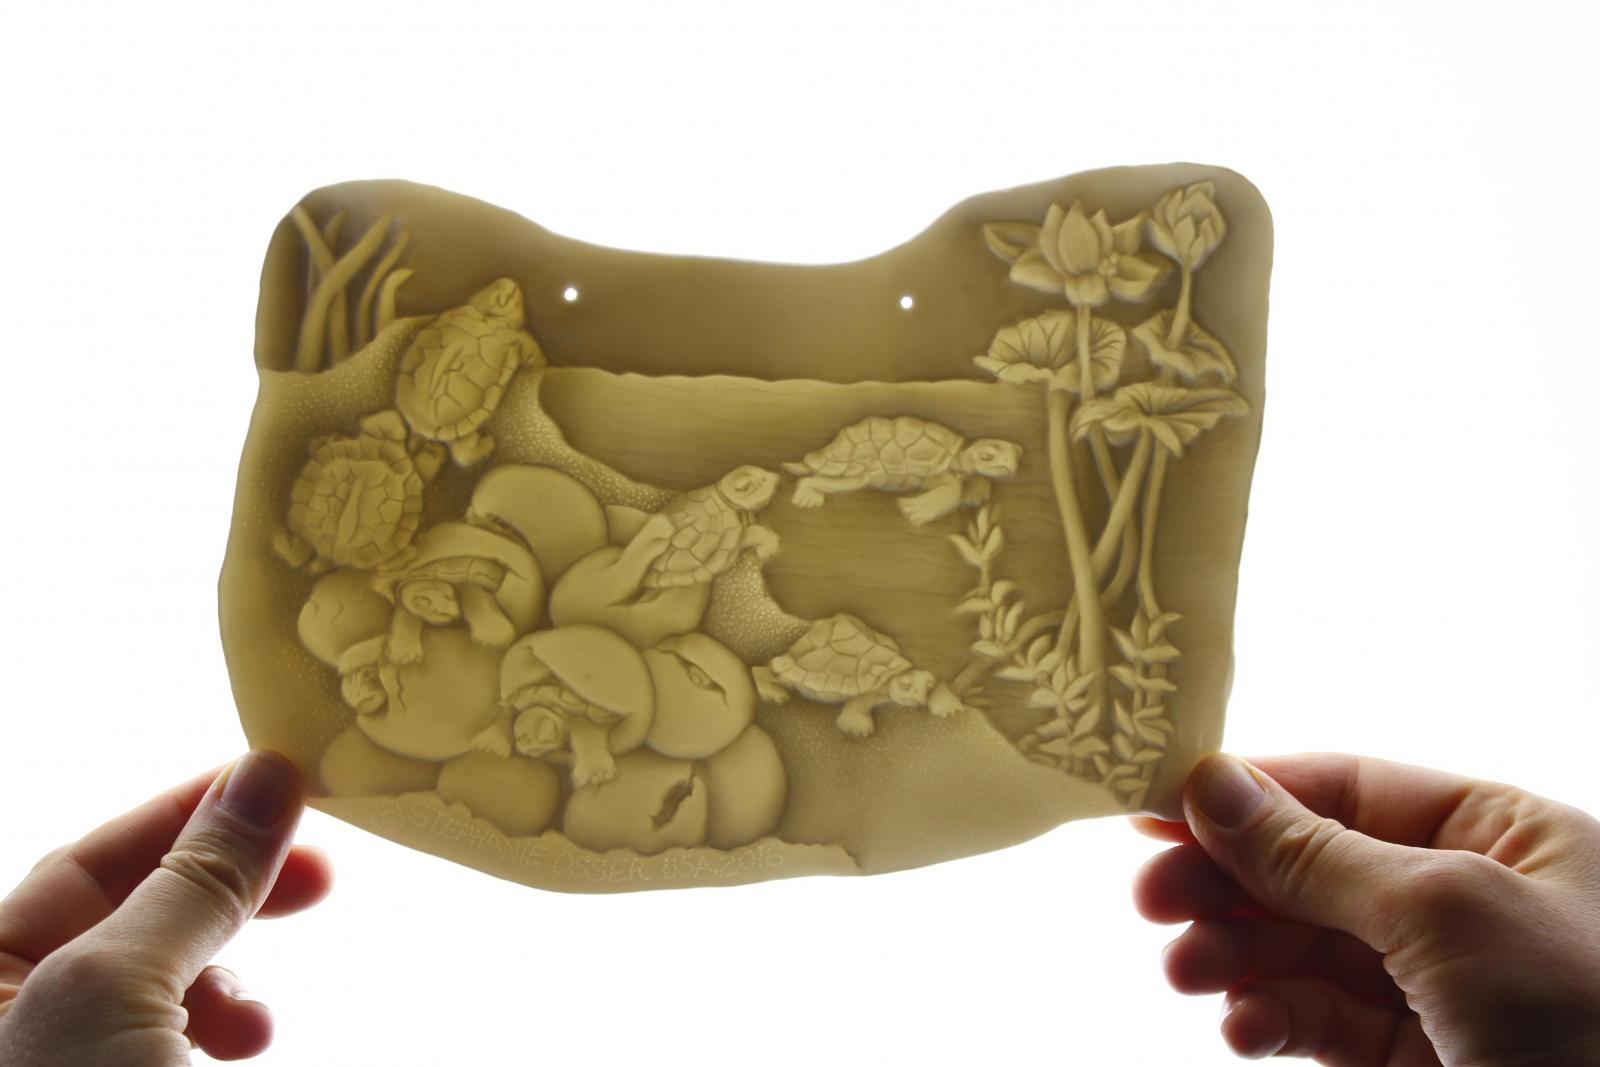 Translucent Porcelain Lithophane by Stephanie Osser